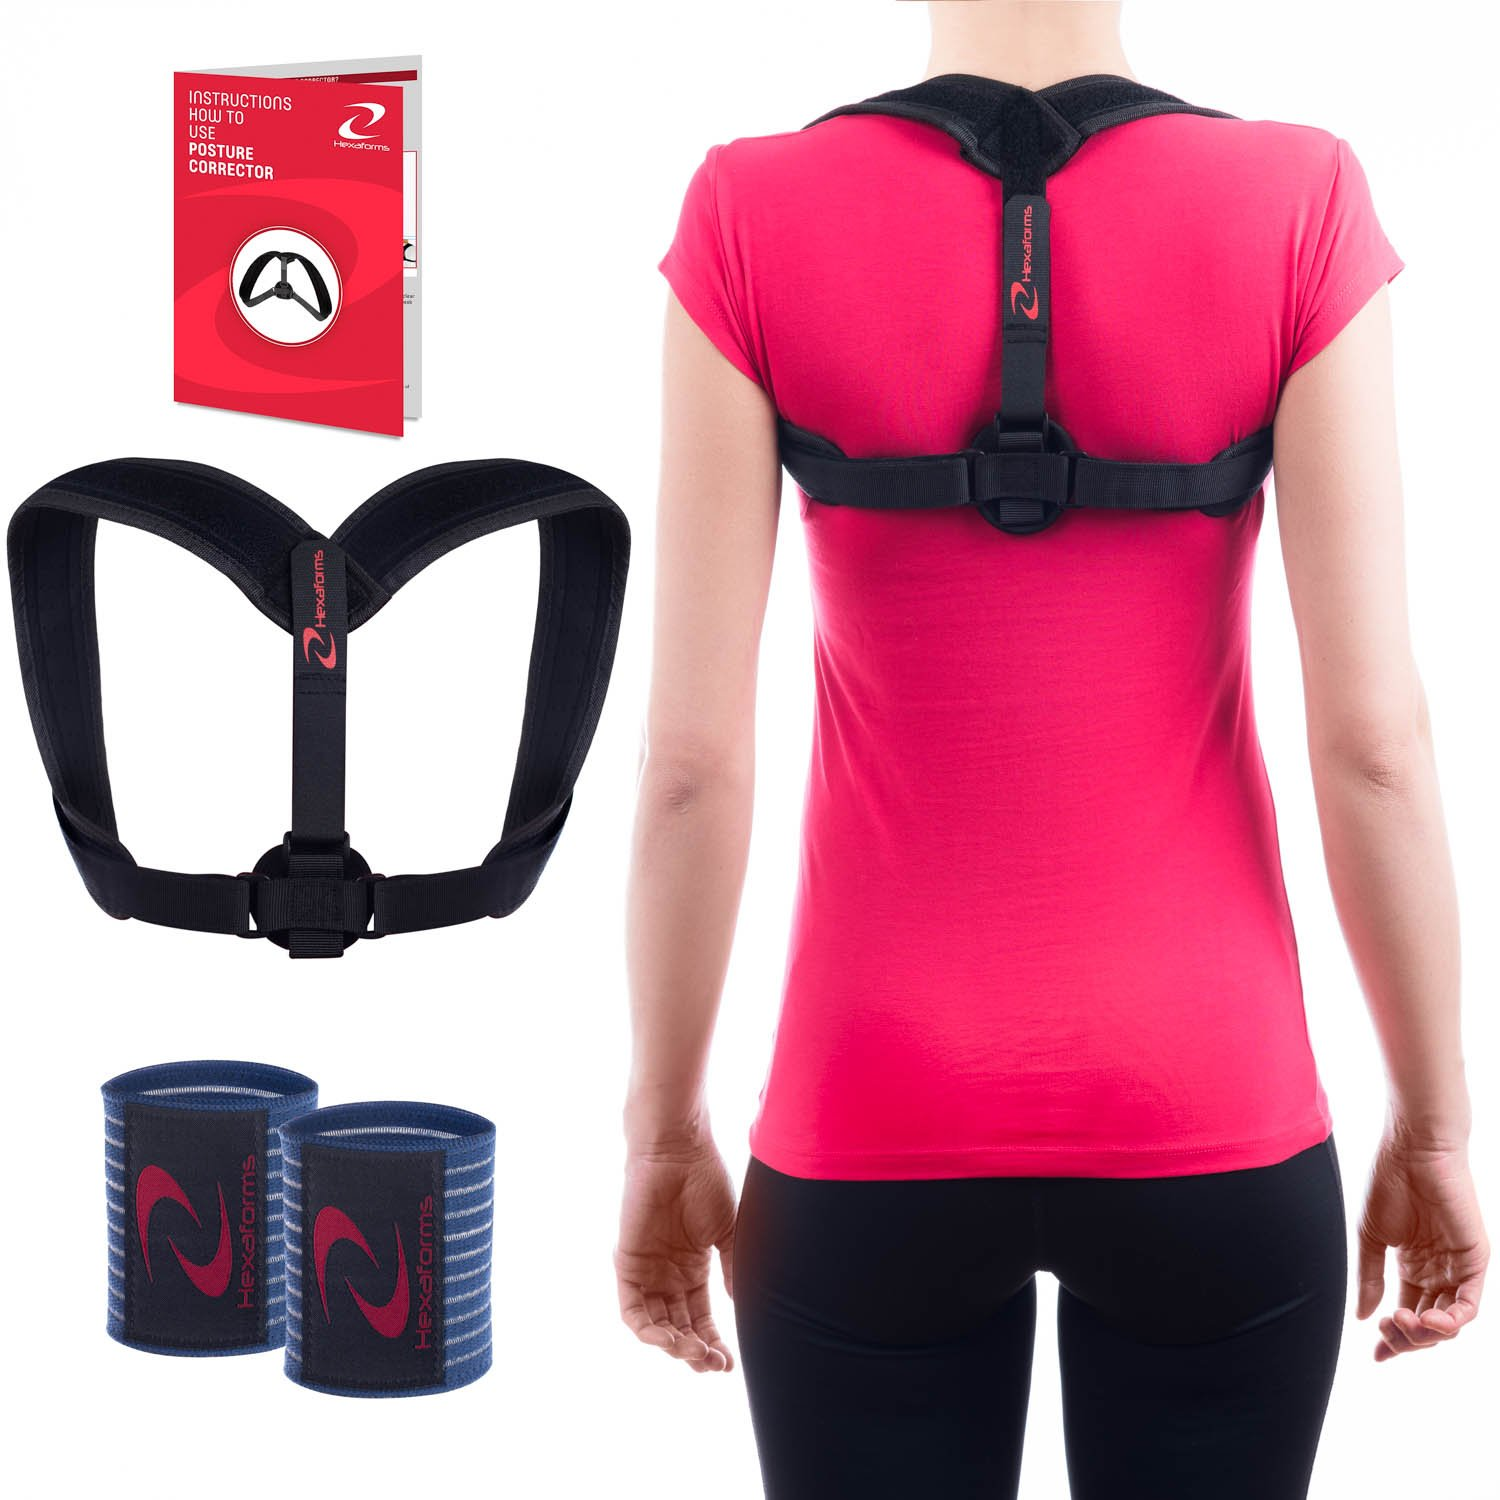 Hexaforms Back Posture Corrector for Women & Men - Effective and Comfortable Posture Brace for Slouching and Hunching - Clavicle Support for Upper Back & Shoulder Pain Relief - Medical Problems